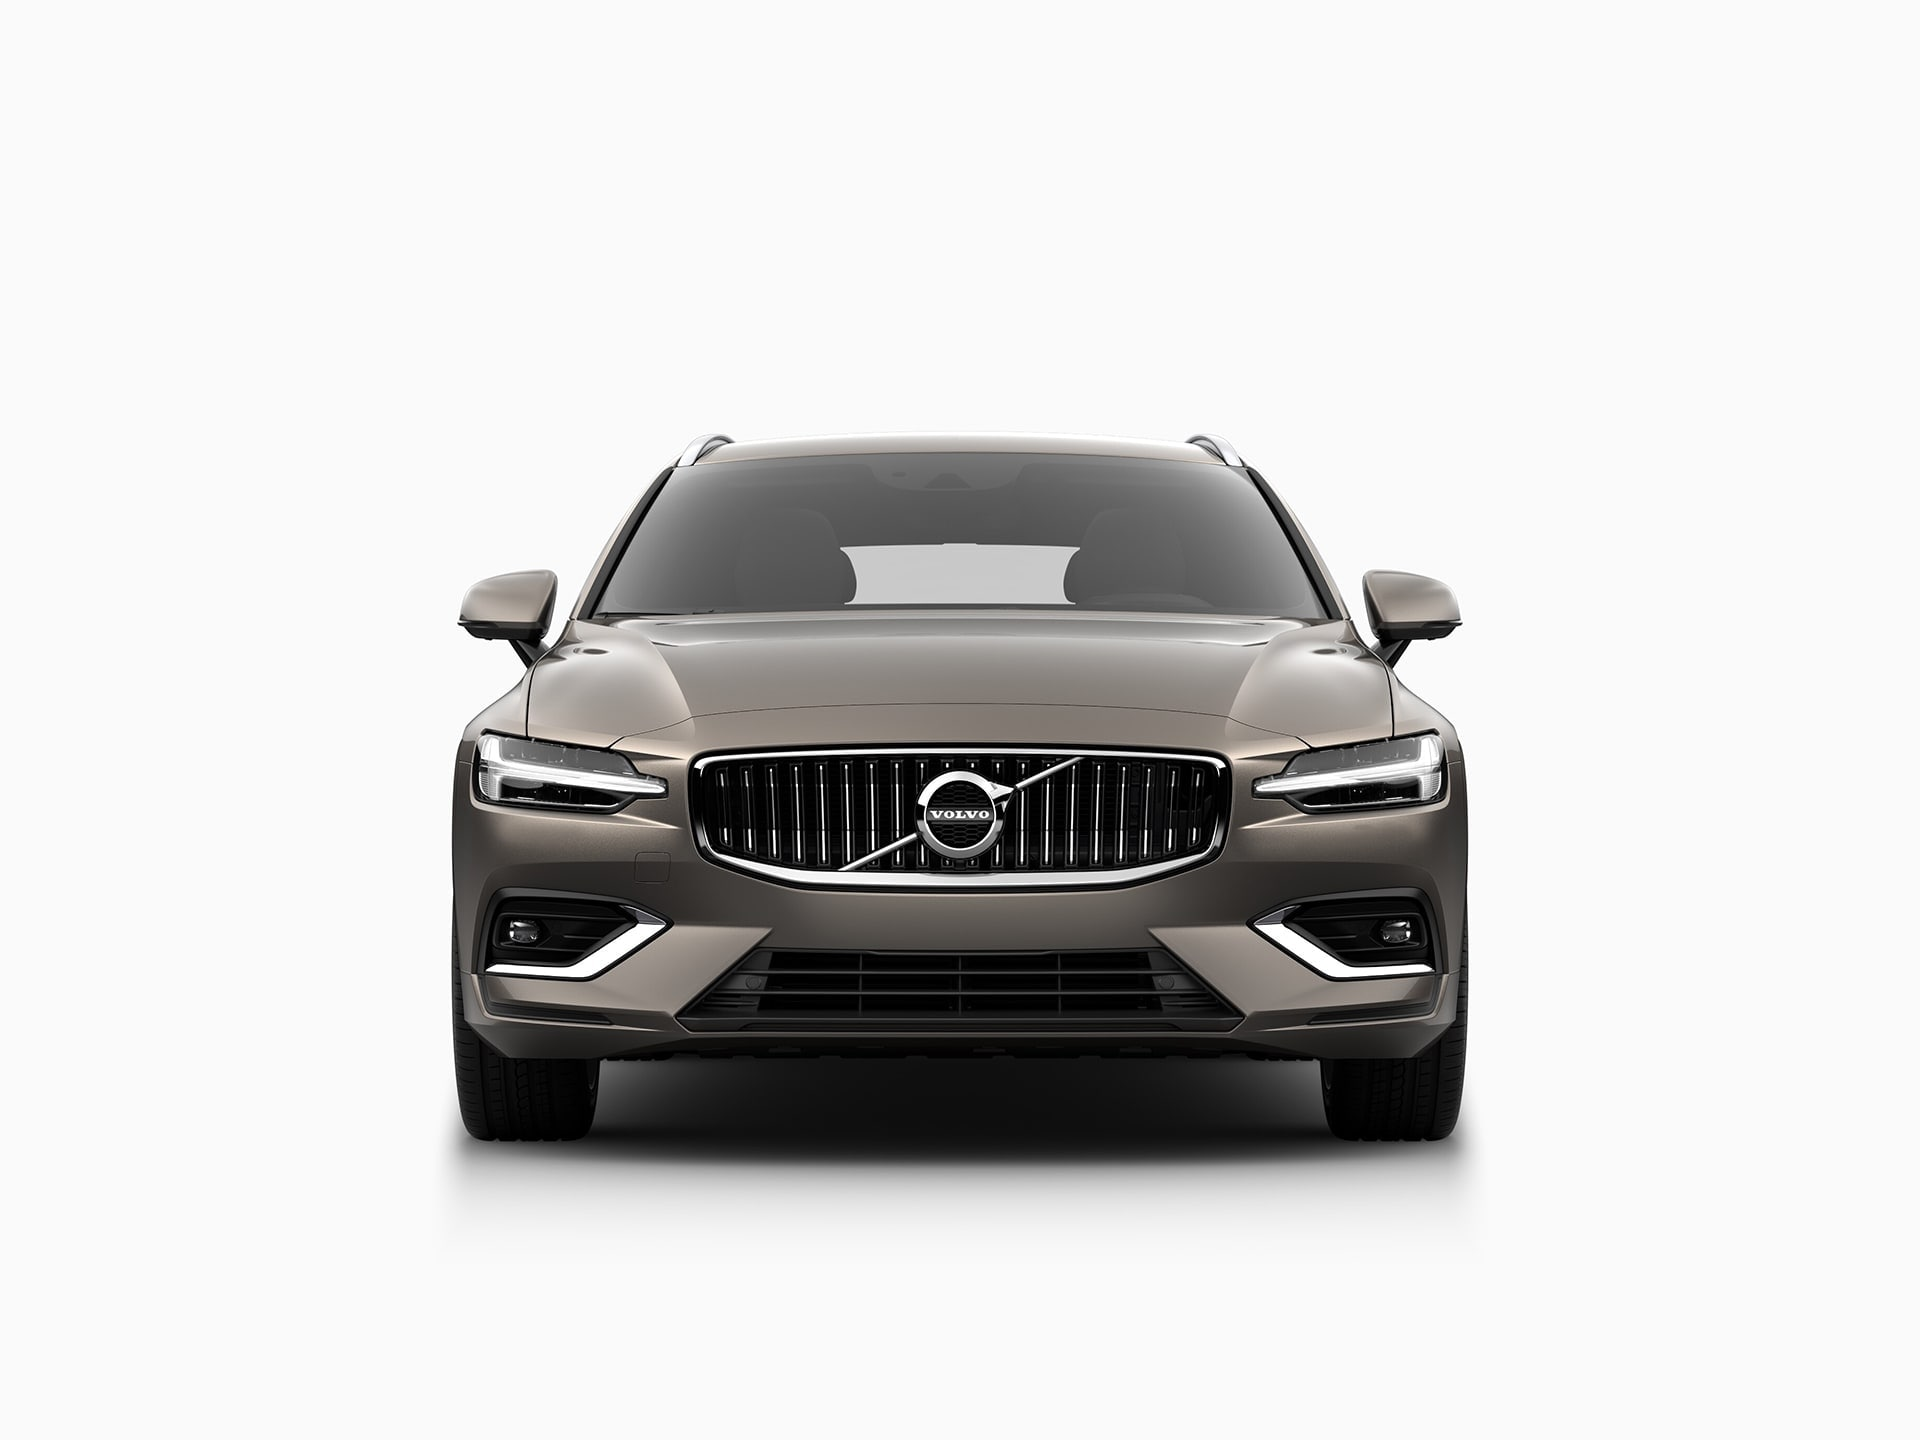 The front of a Volvo V60.